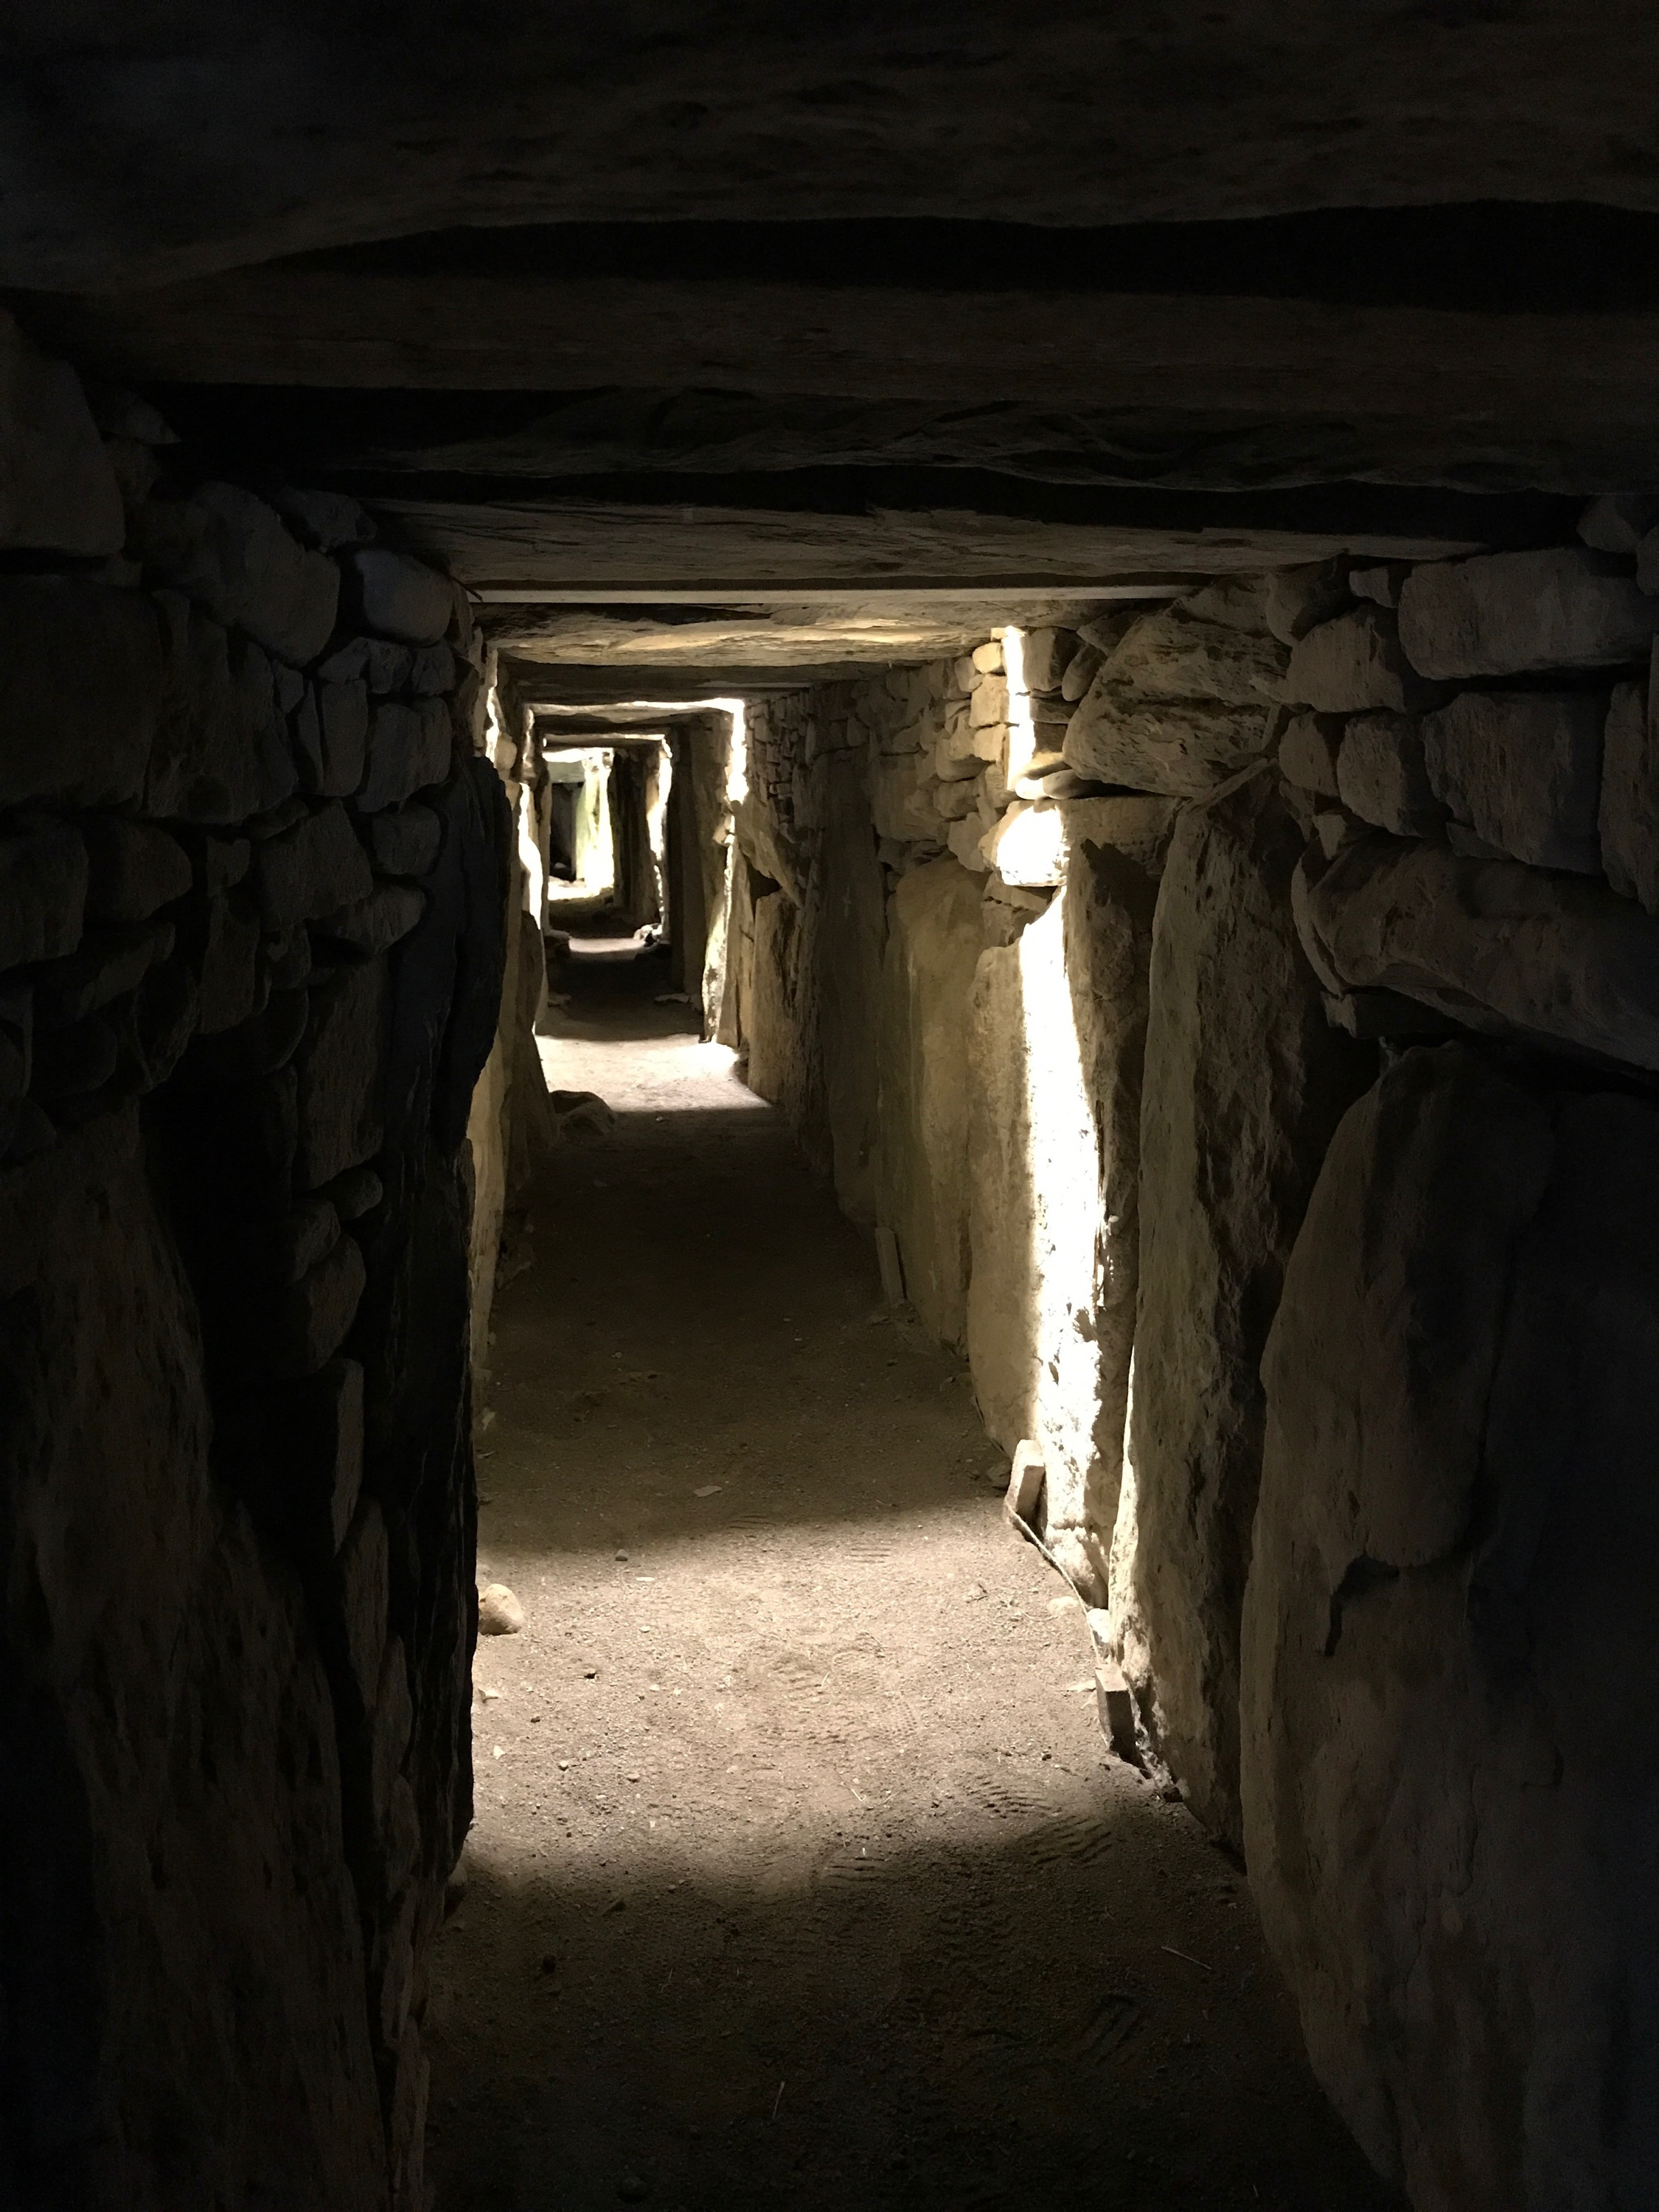 The eastern passage inside Knowth.